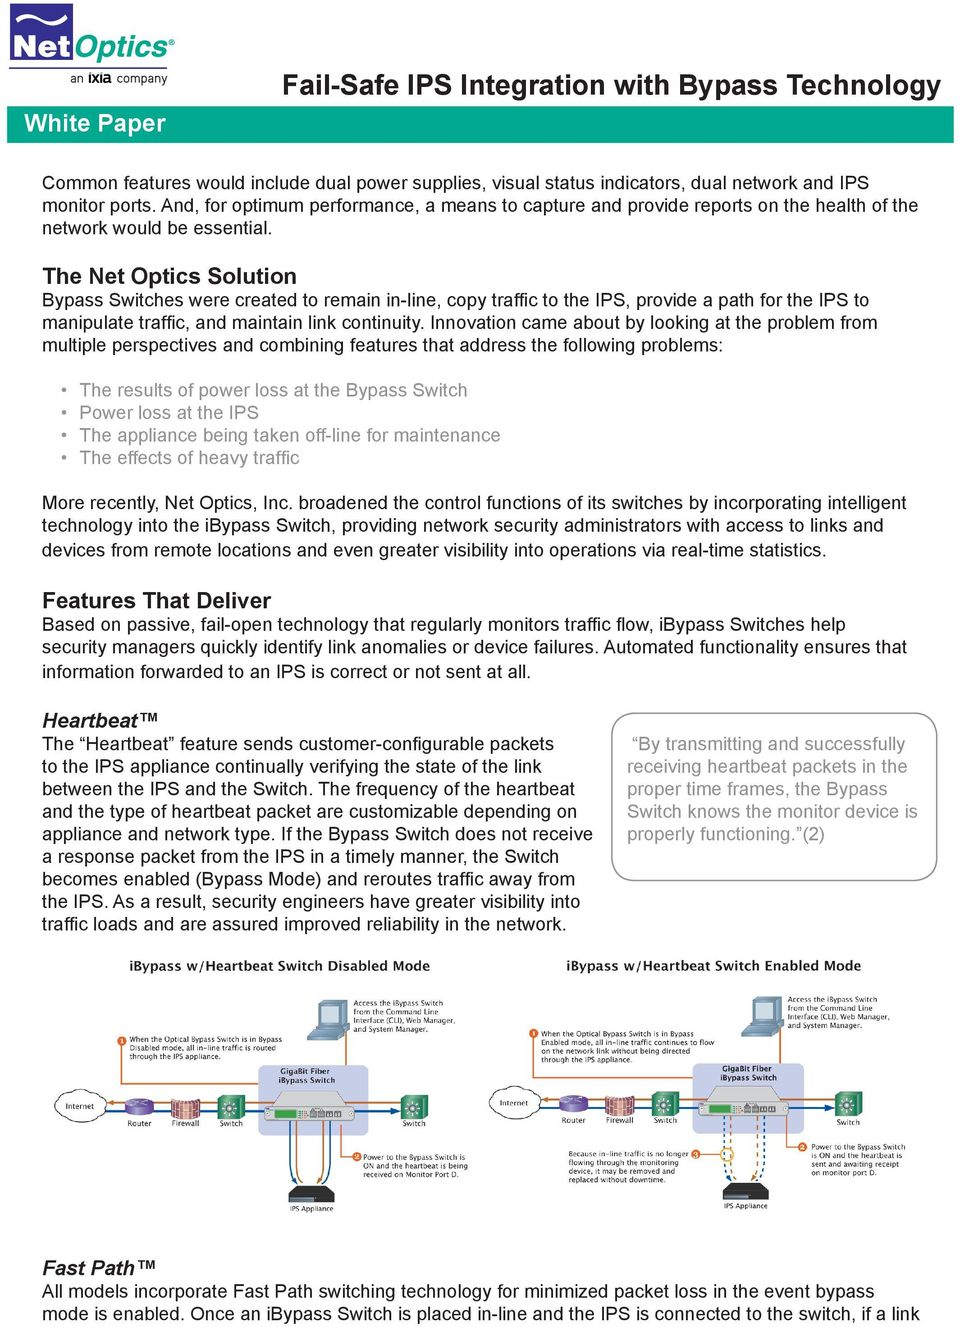 The Net Optics Solution Bypass Switches were created to remain in-line, copy traffic to the IPS, provide a path for the IPS to manipulate traffic, and maintain link continuity.